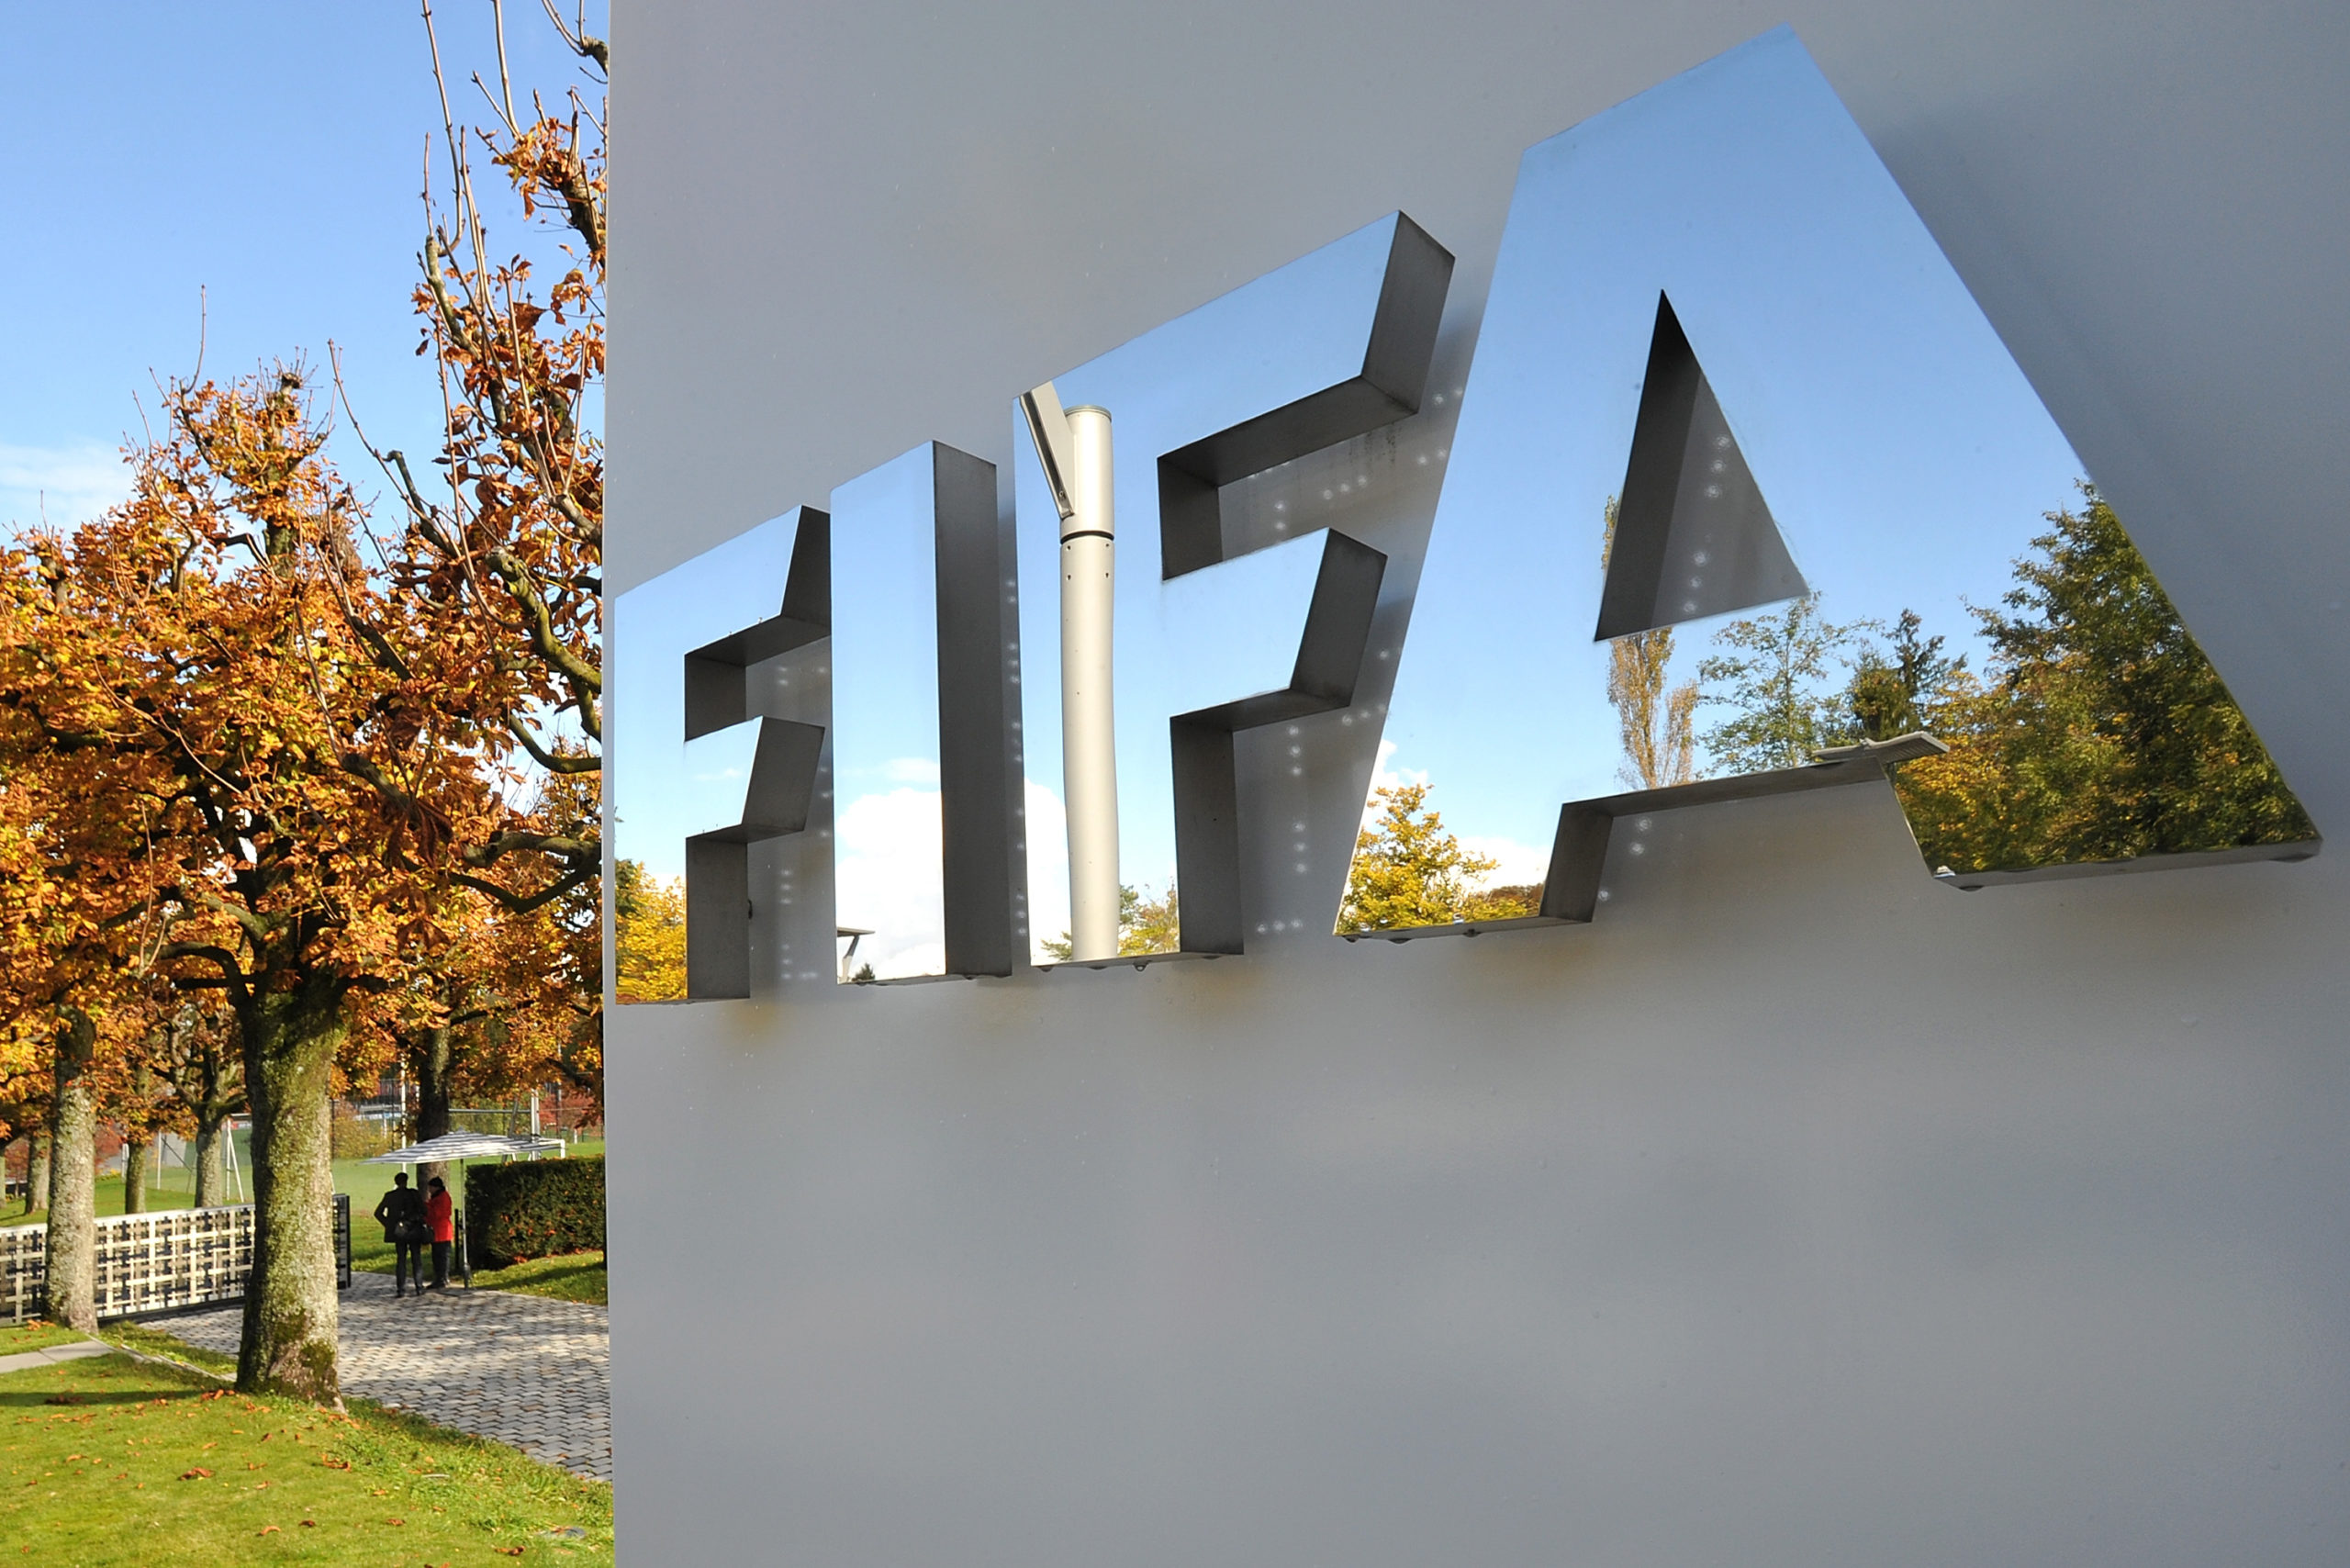 FIFA are said to be backing a new European Super League